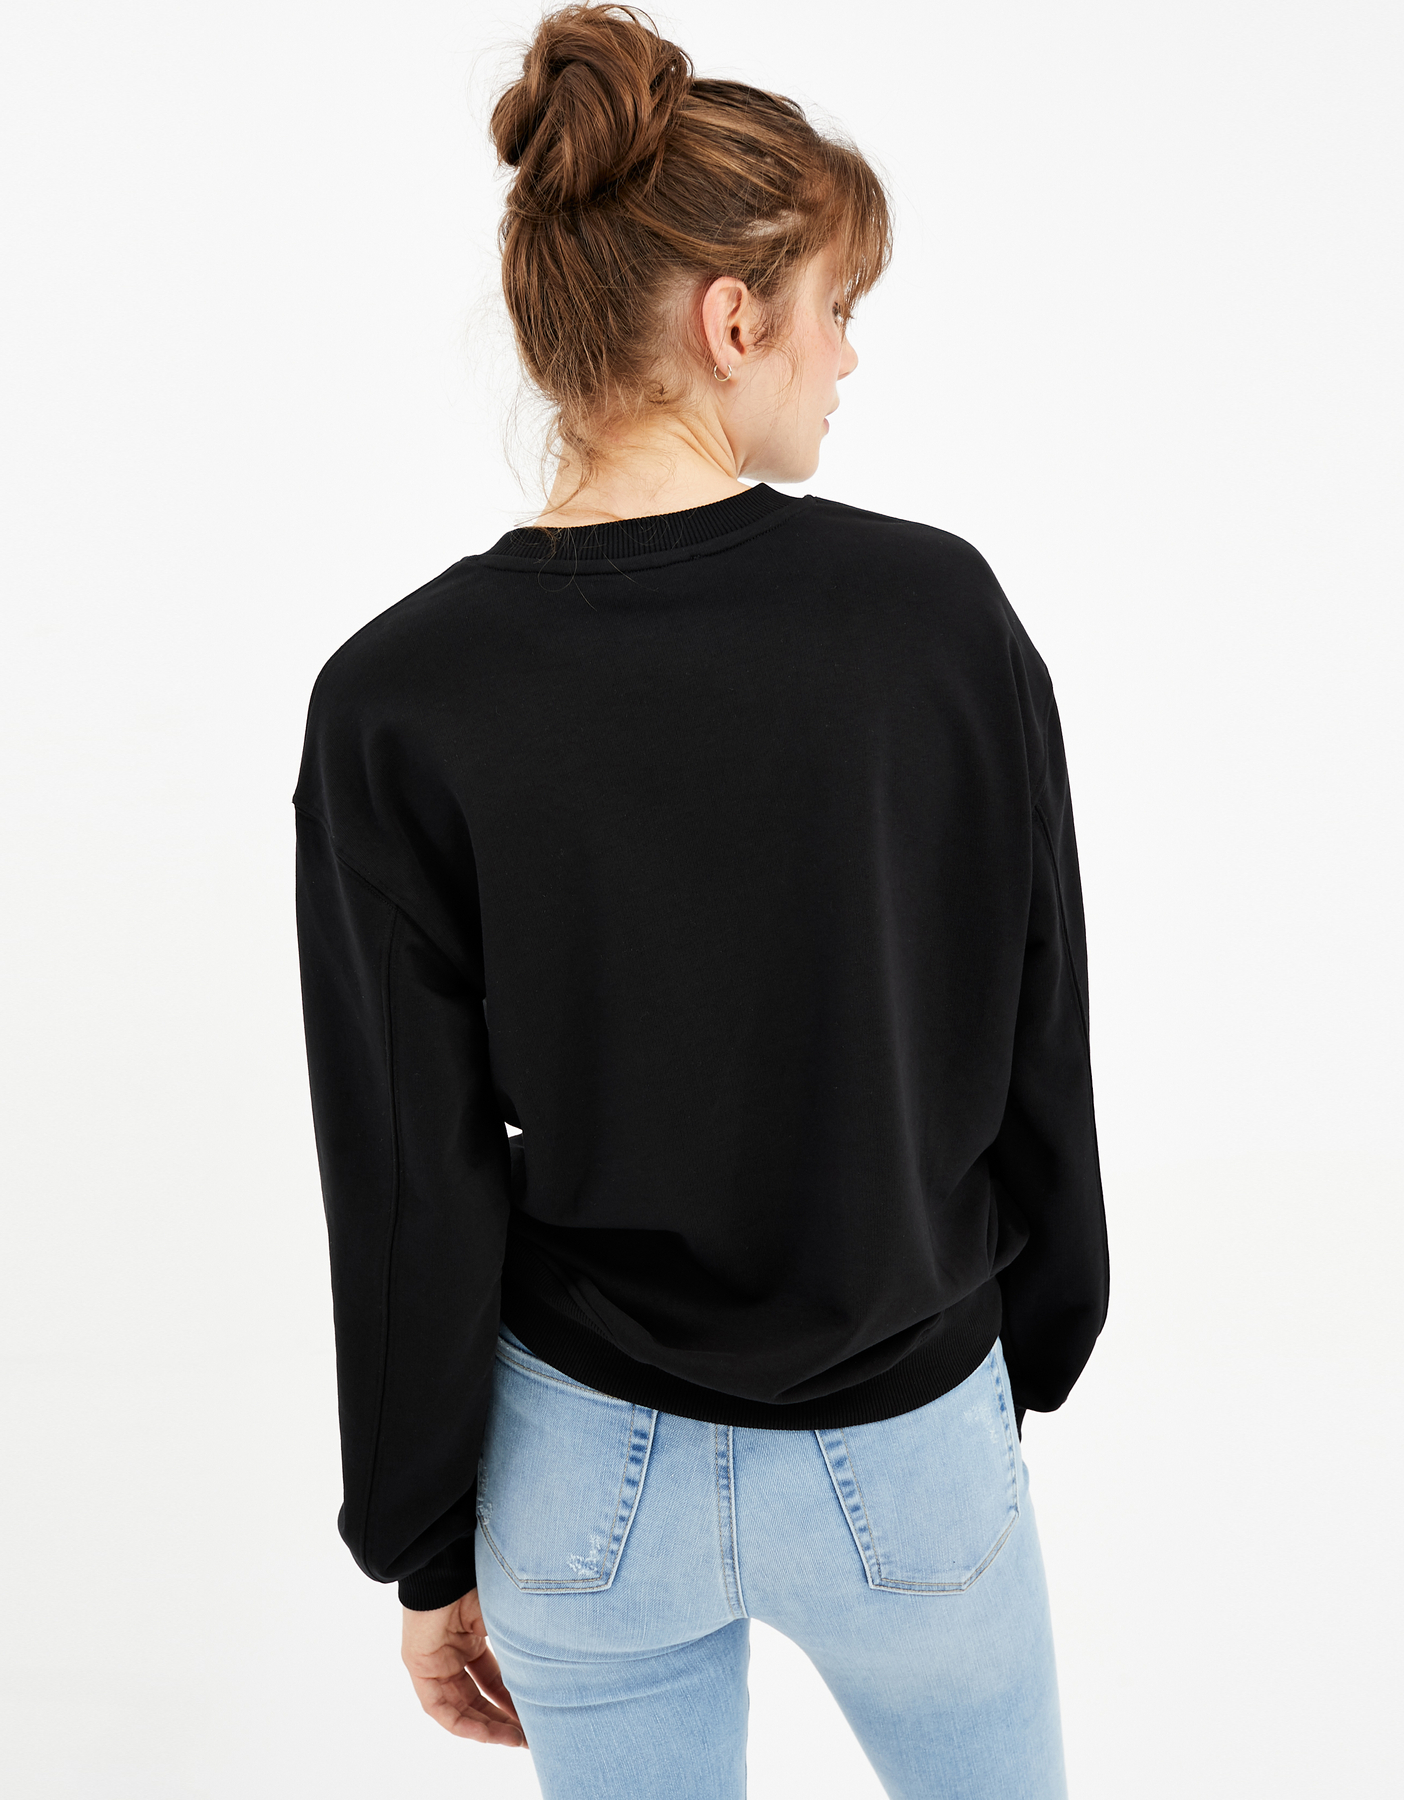 Meme Black Sweatshirt